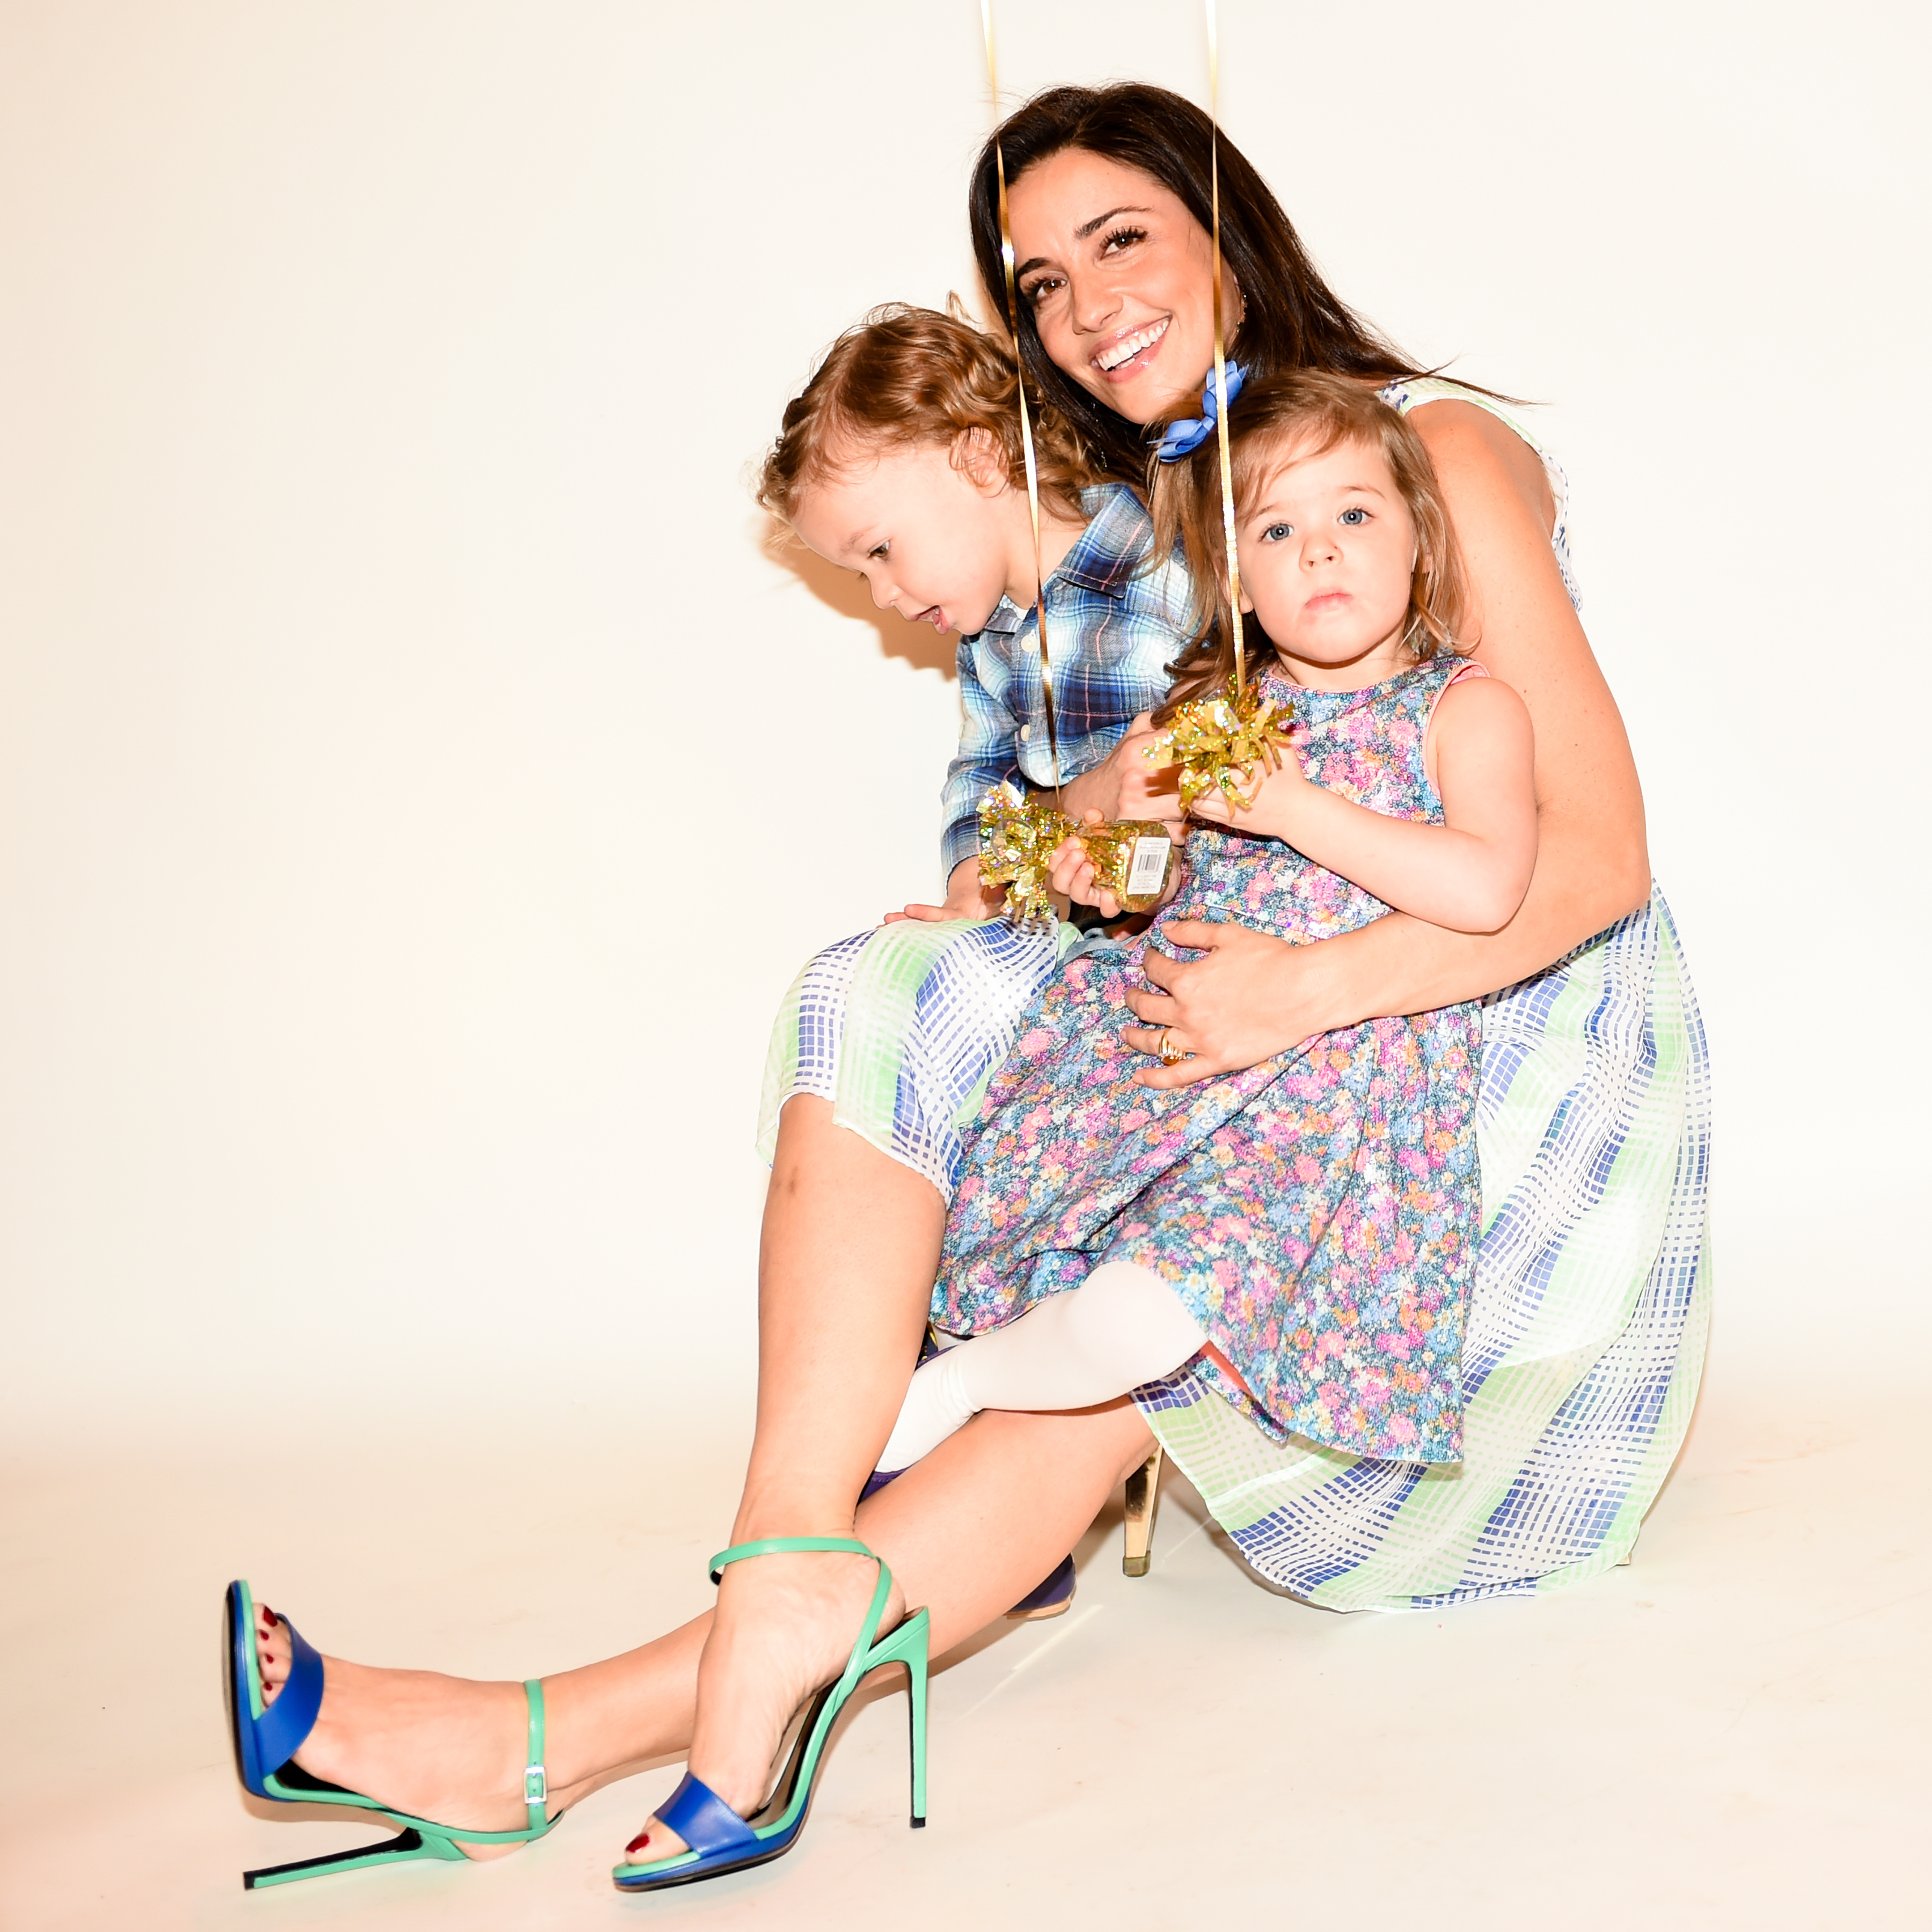 Shoshanna Gruss and her children in the Gucci photo booth at the Bunny Hop (Photo: Patrick McMullan).